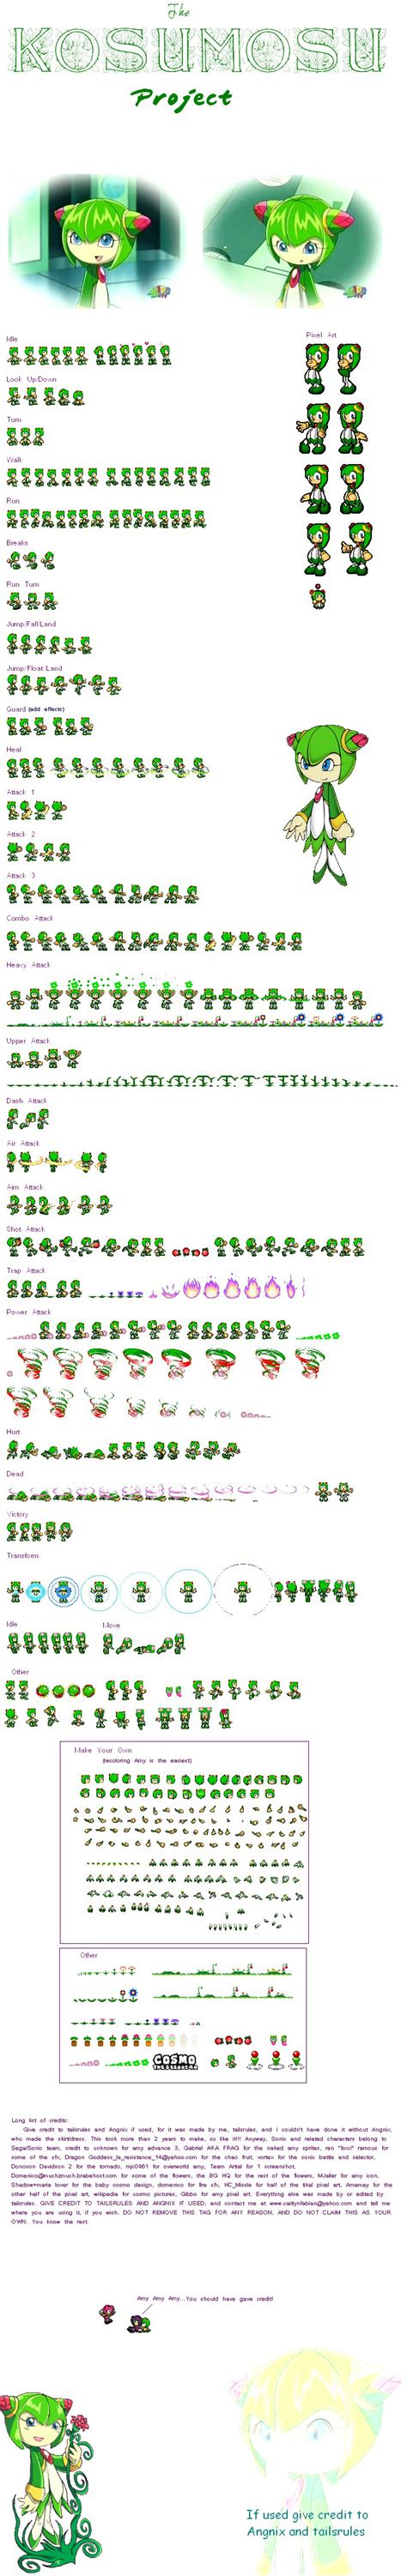 cosmo the cosmo the seedrian sprites by tienchi247 on deviantart